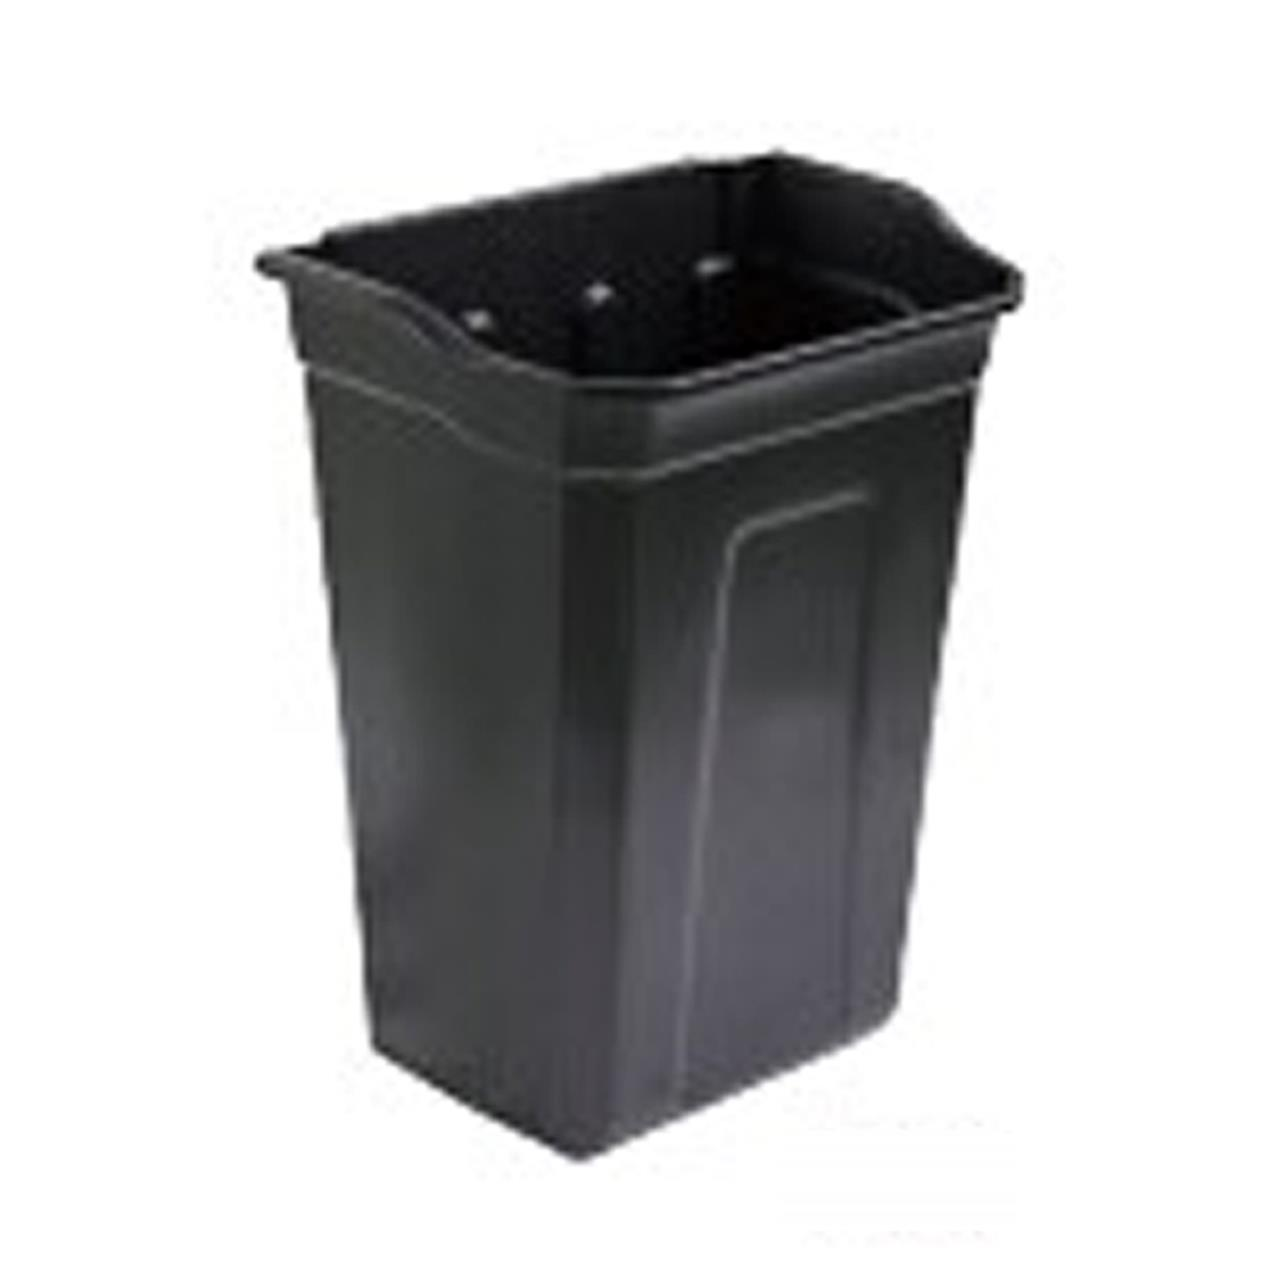 TRUST Refuse Bin For Trolley Black